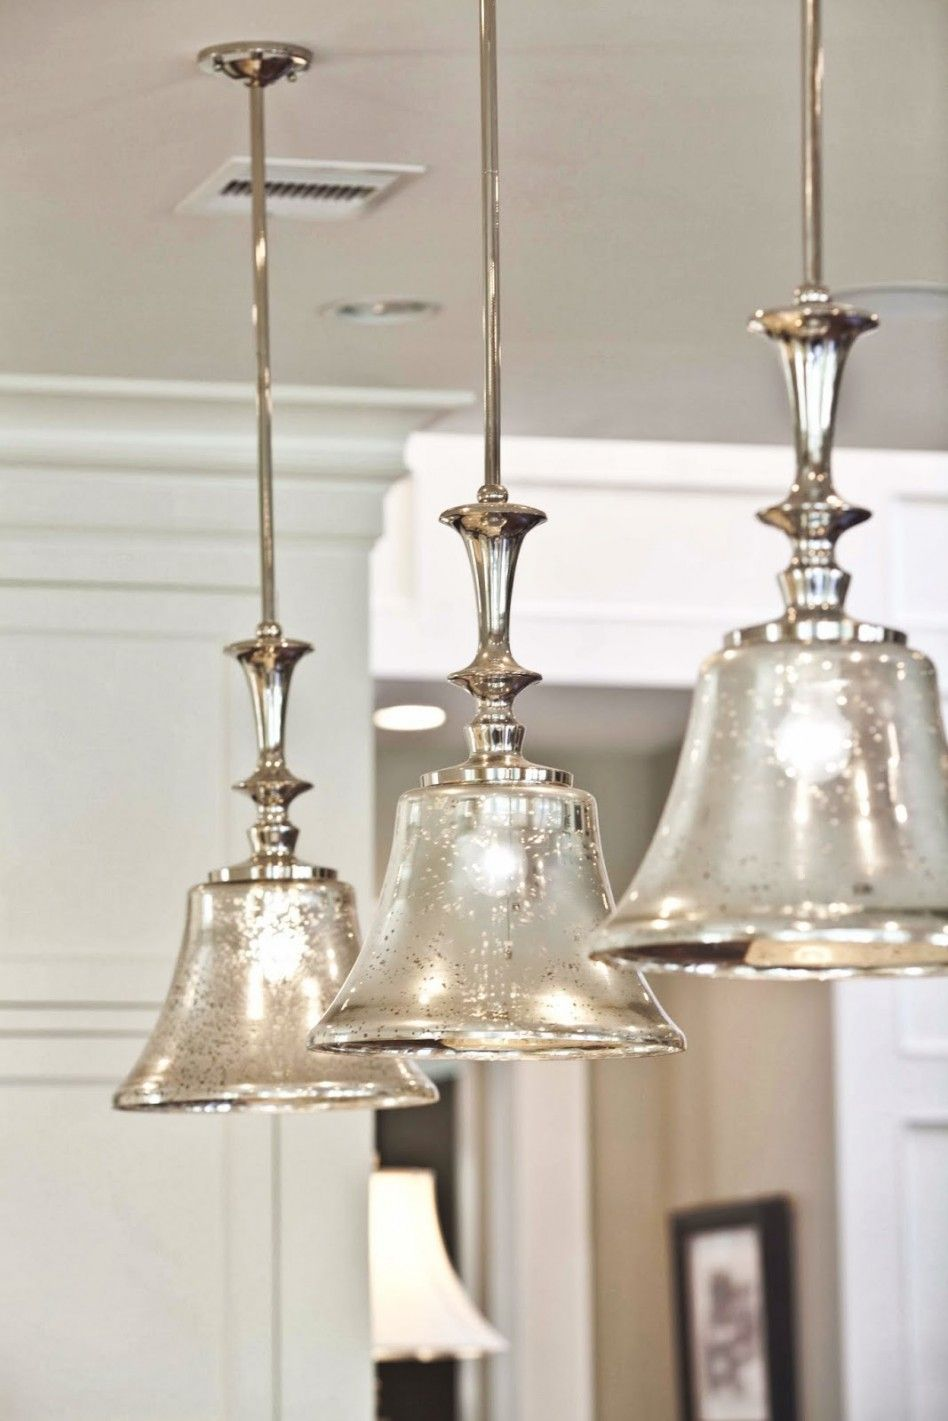 Lantern Lights Over Kitchen Island Farmhouse Unique Decorative Lighting Google Search Cool Log